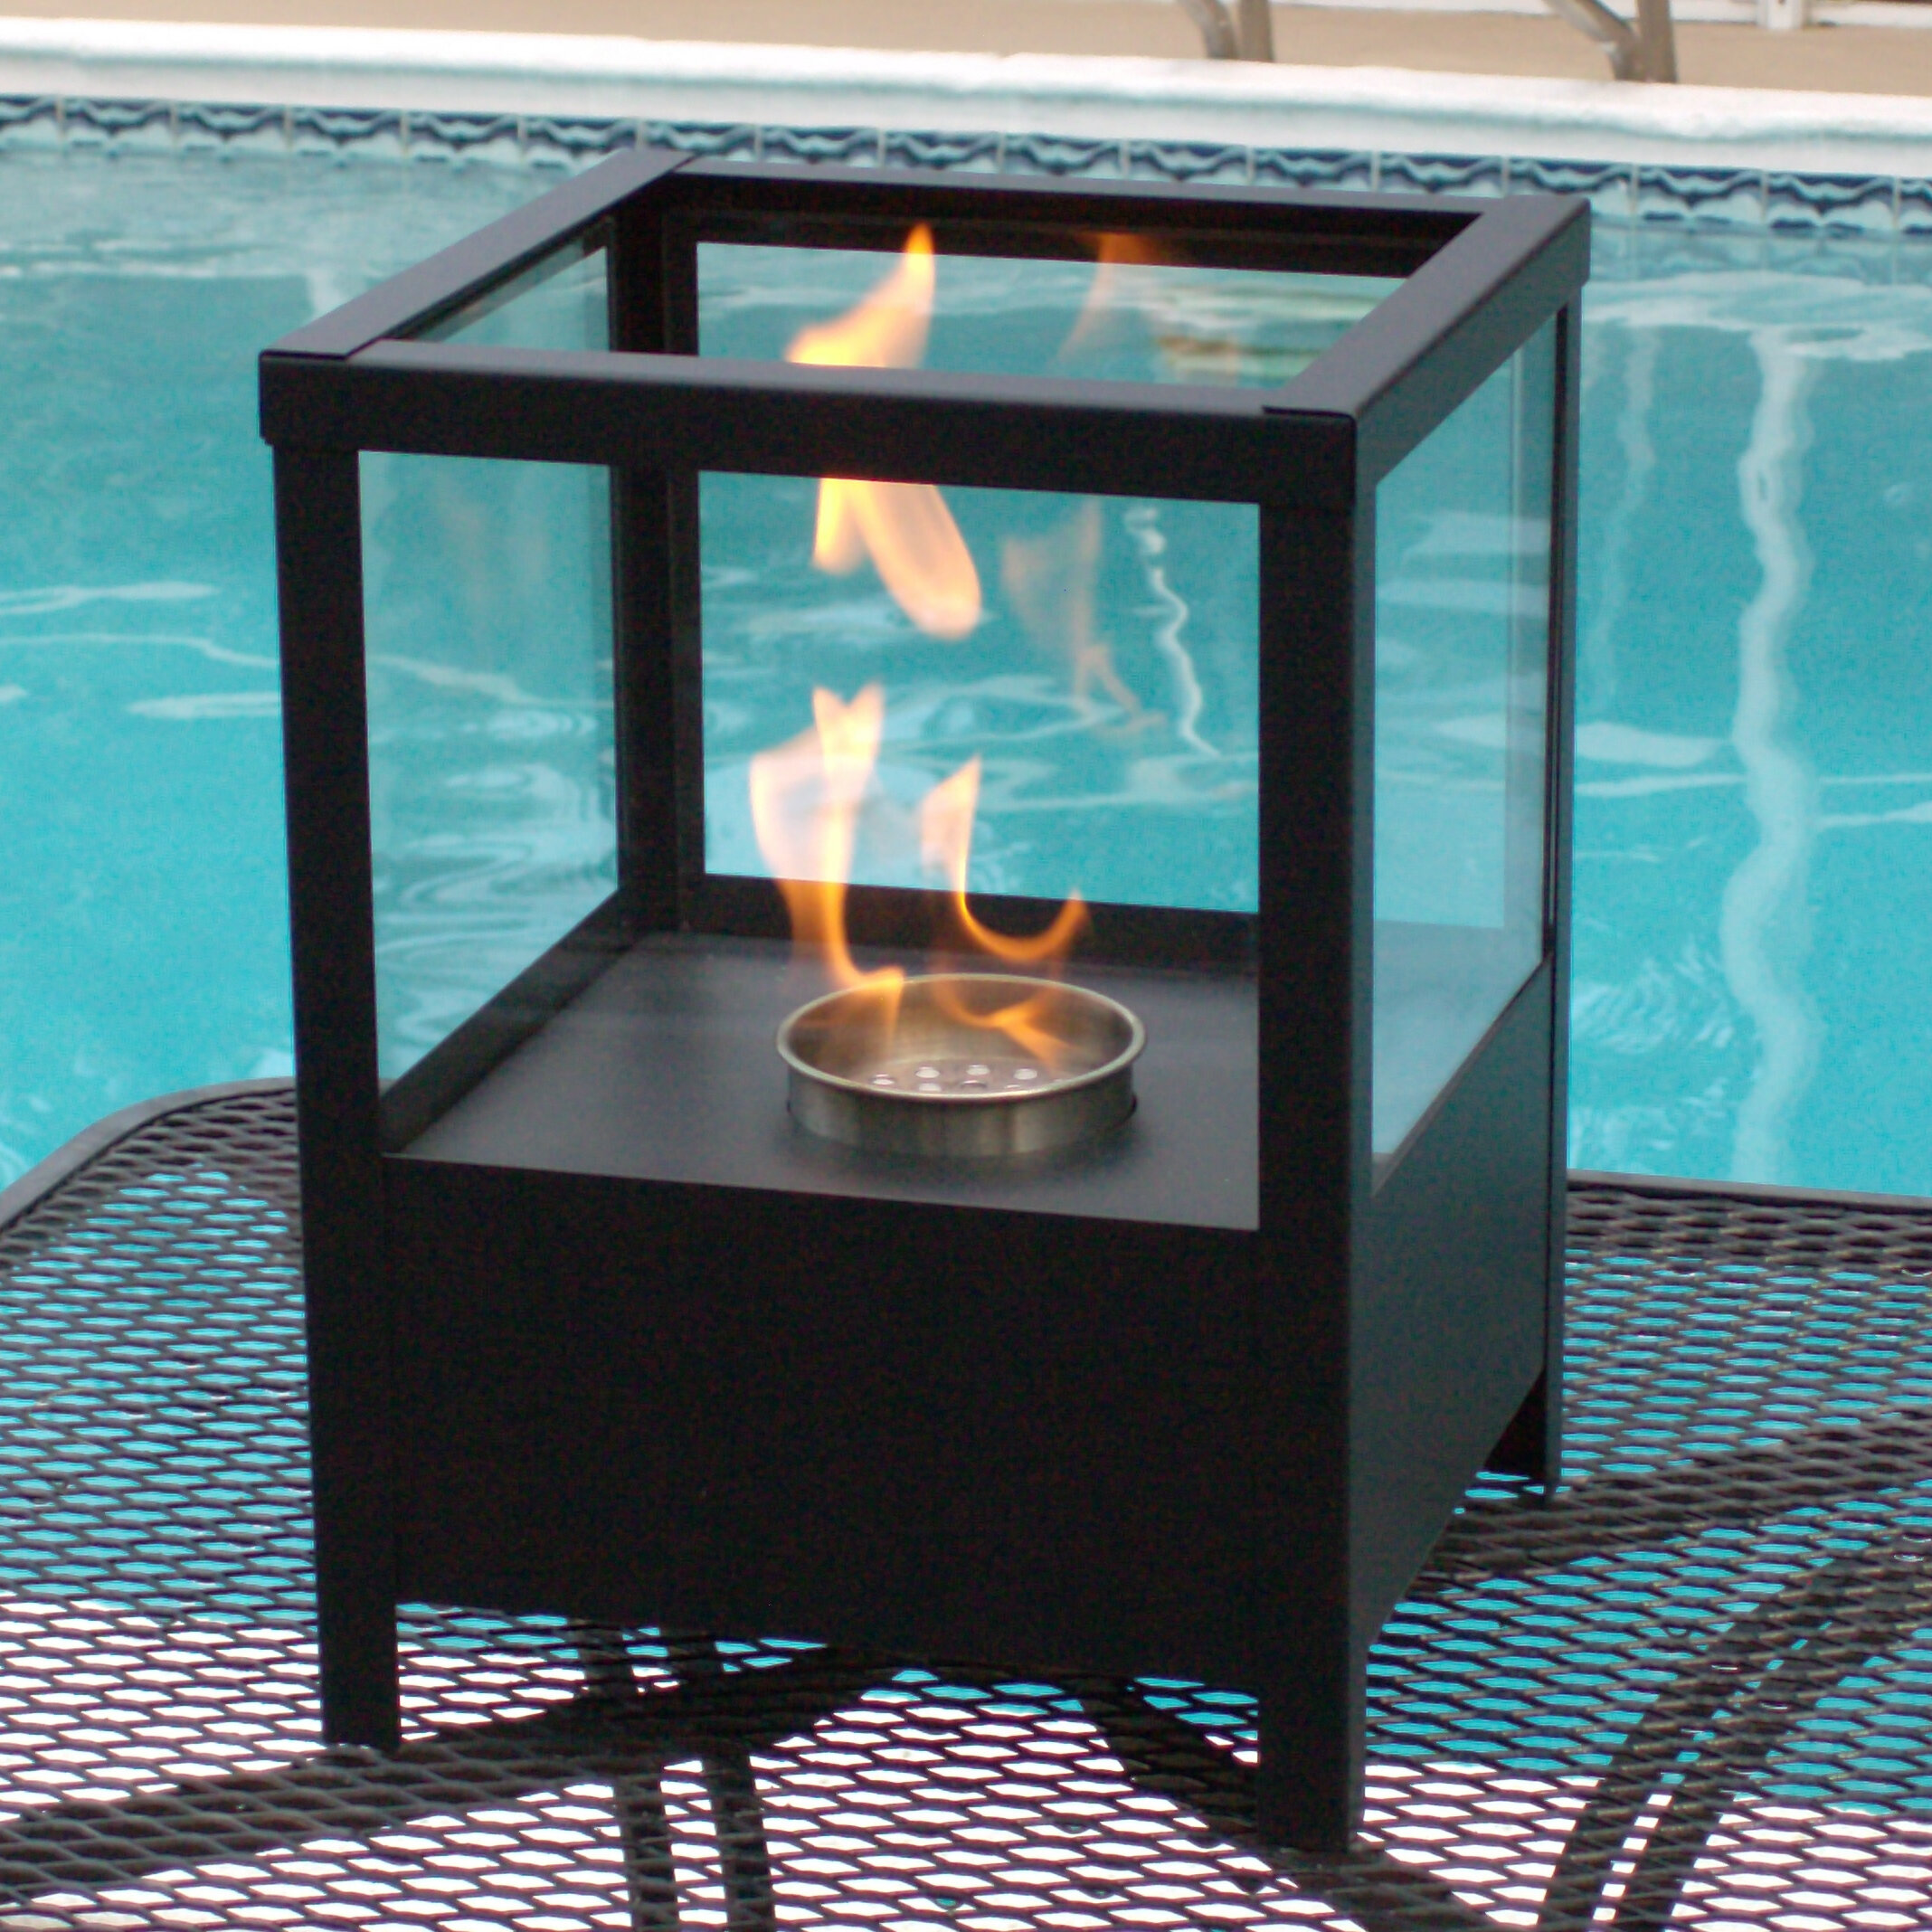 print outdoor fireplace zurich retro wood com walmart finish electric medium tabletop ip tzrf house warm